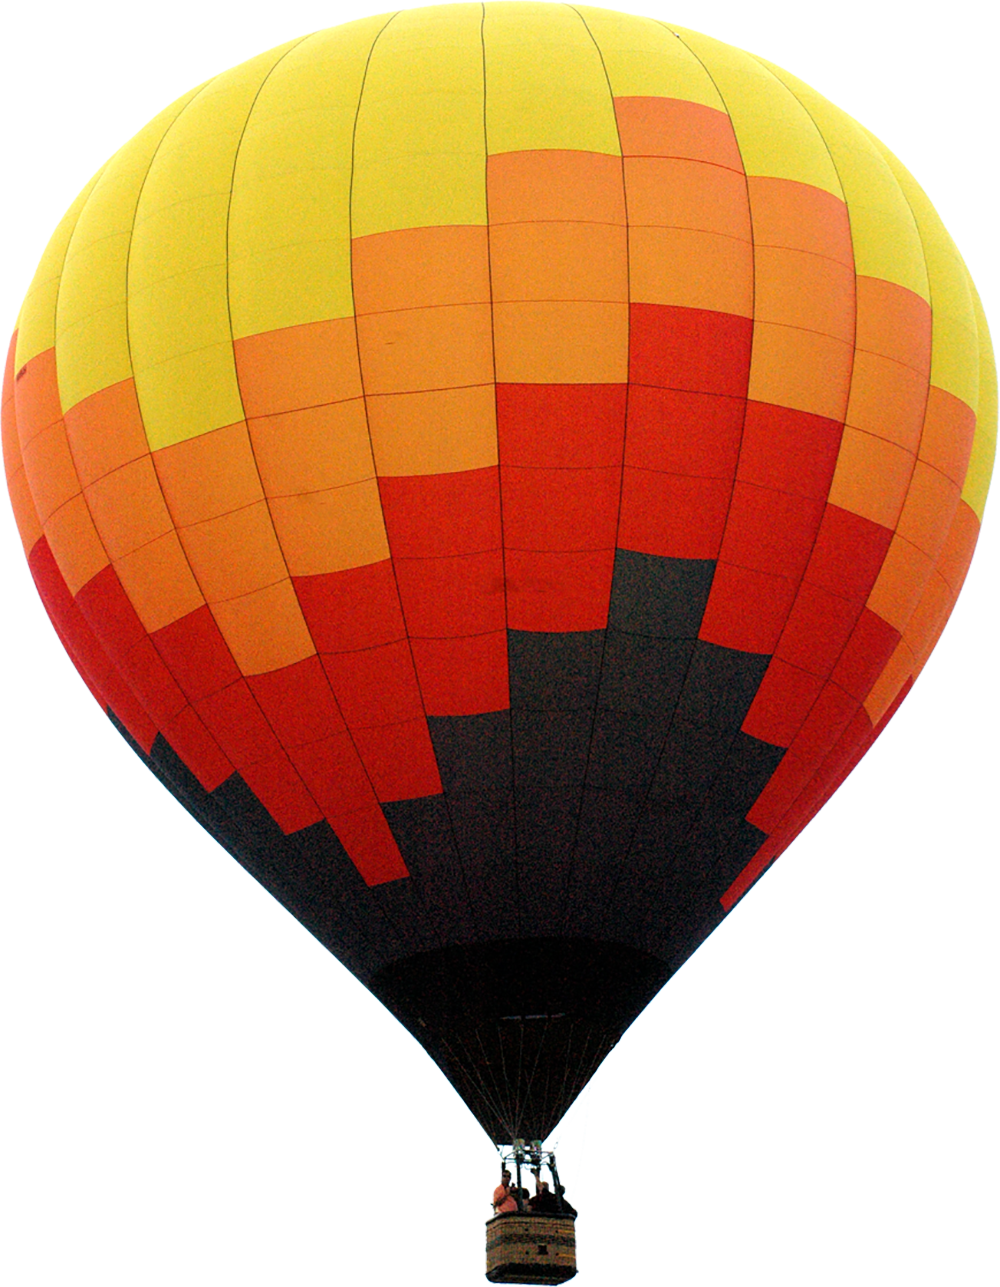 Image - Entourage - Air Balloon 13